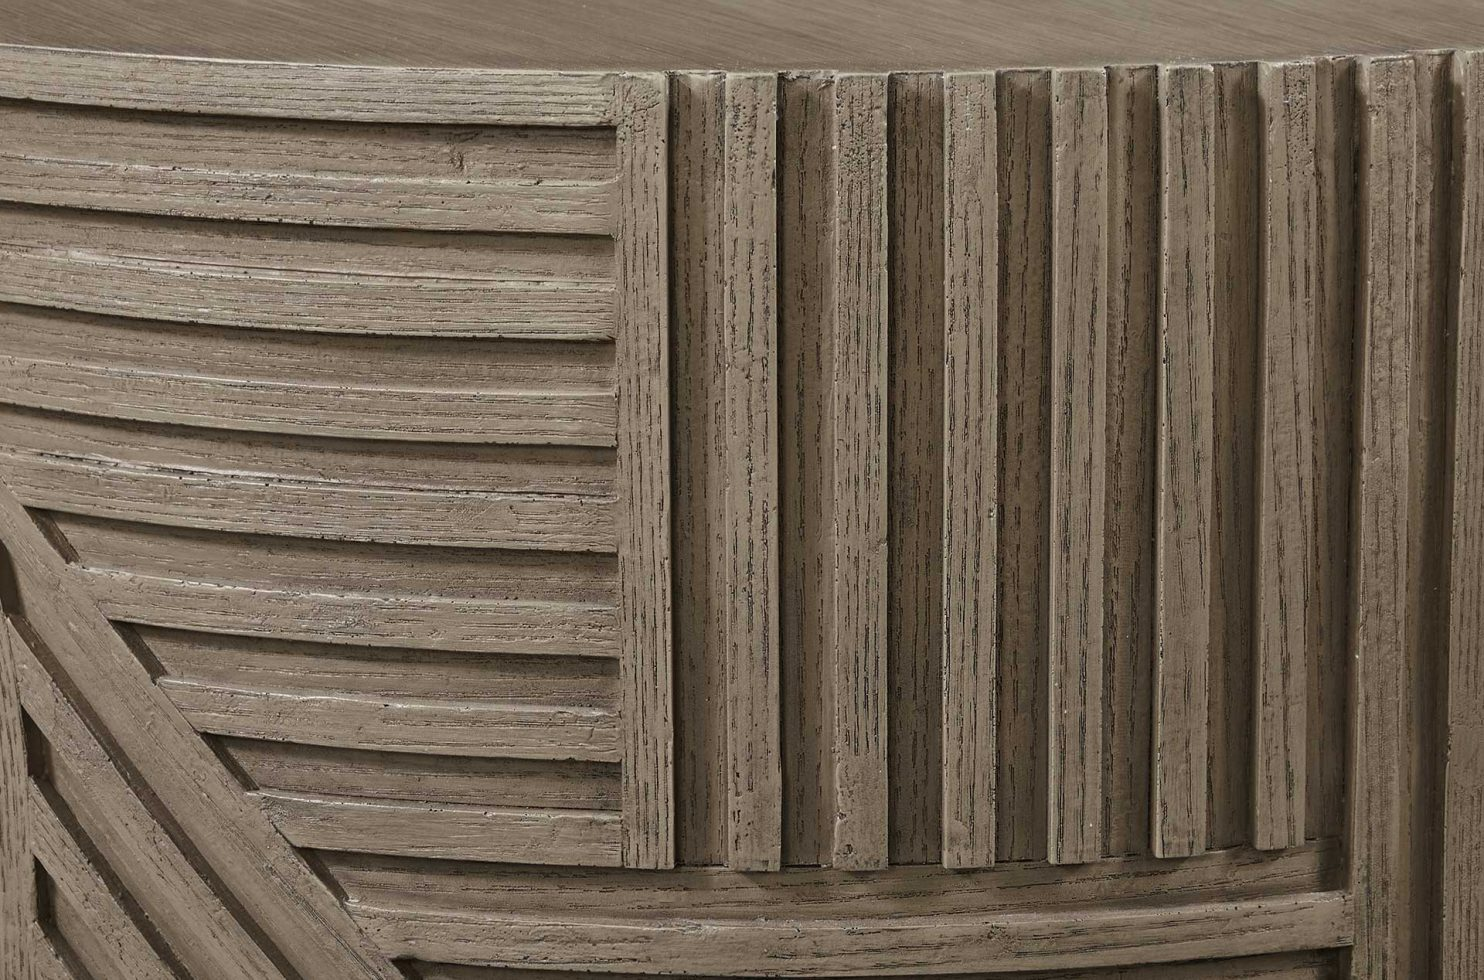 prov frp serenity energy textured round table S1568804146 dtl10 web